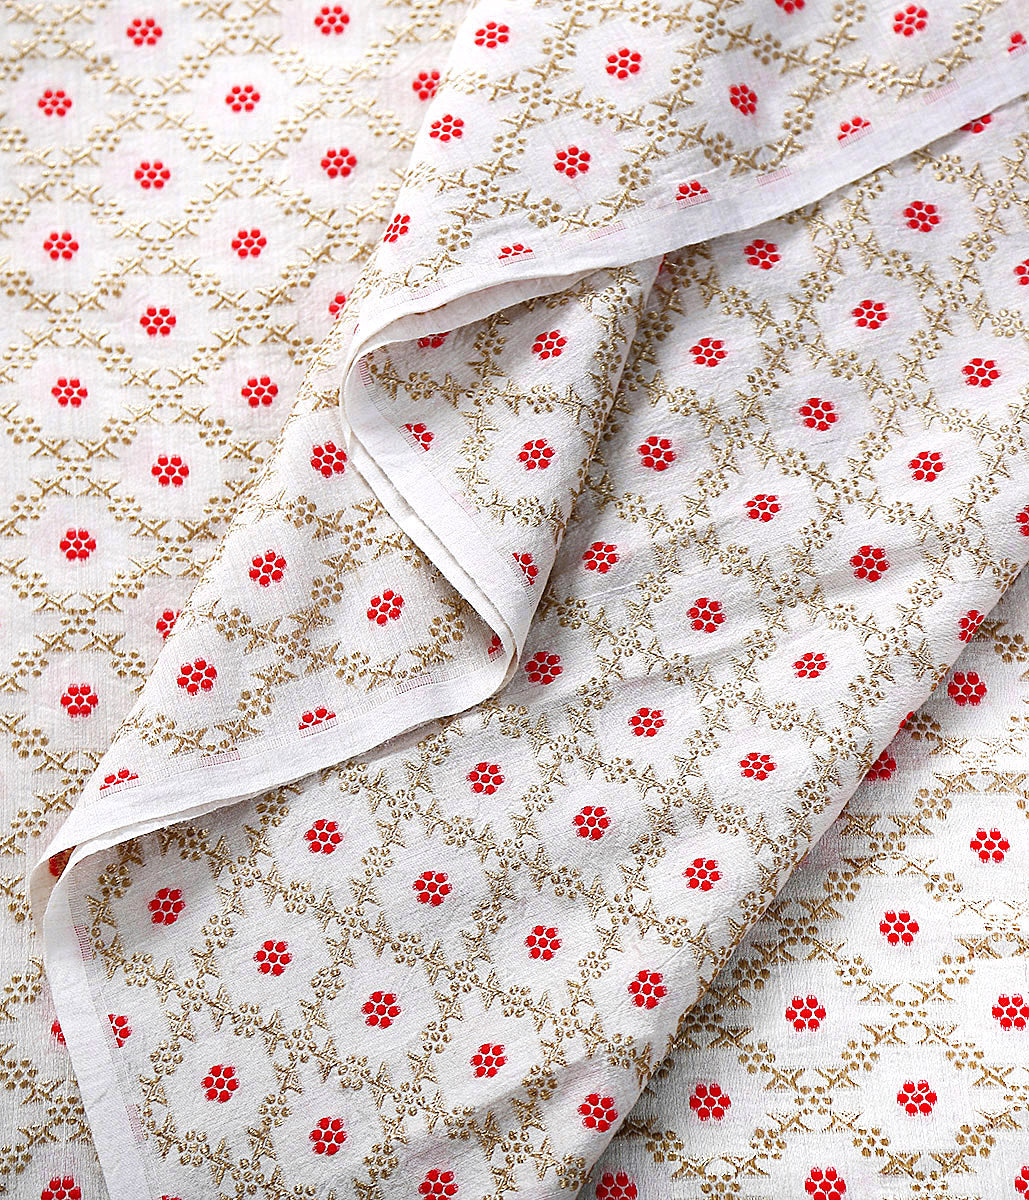 Handwoven Banarasi Munga Silk Fabric with Red Meenakari Floral Jaal